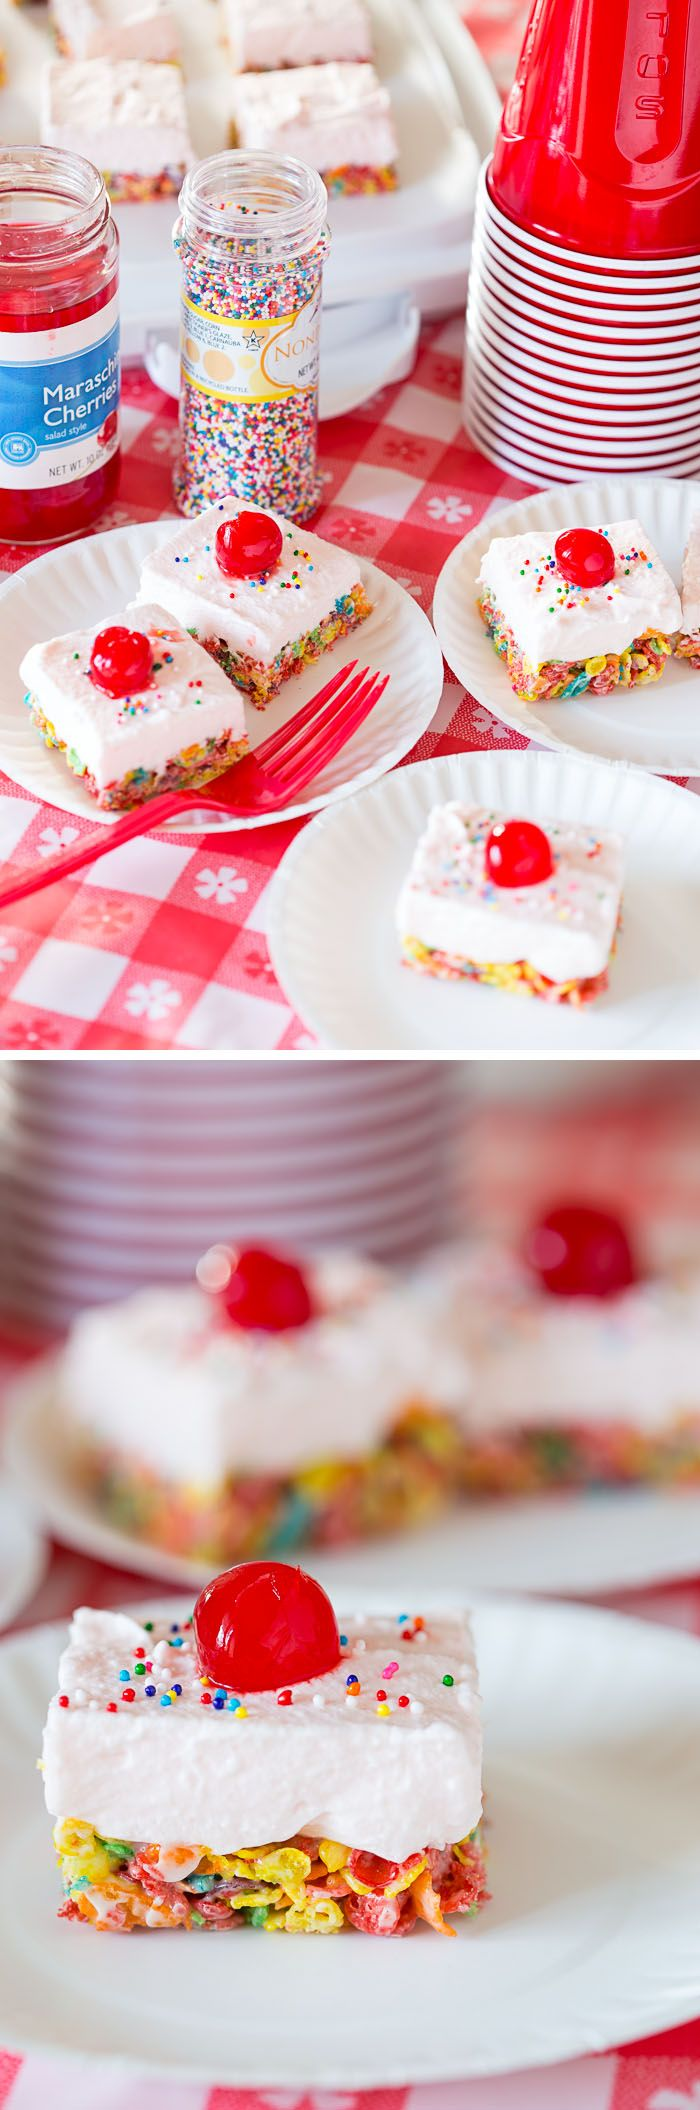 These Cherry Cream Fruity Pebbles Bars are fruity treats perfect for tailgating this football season! Whip up this recipe for a game day party. #sponsored